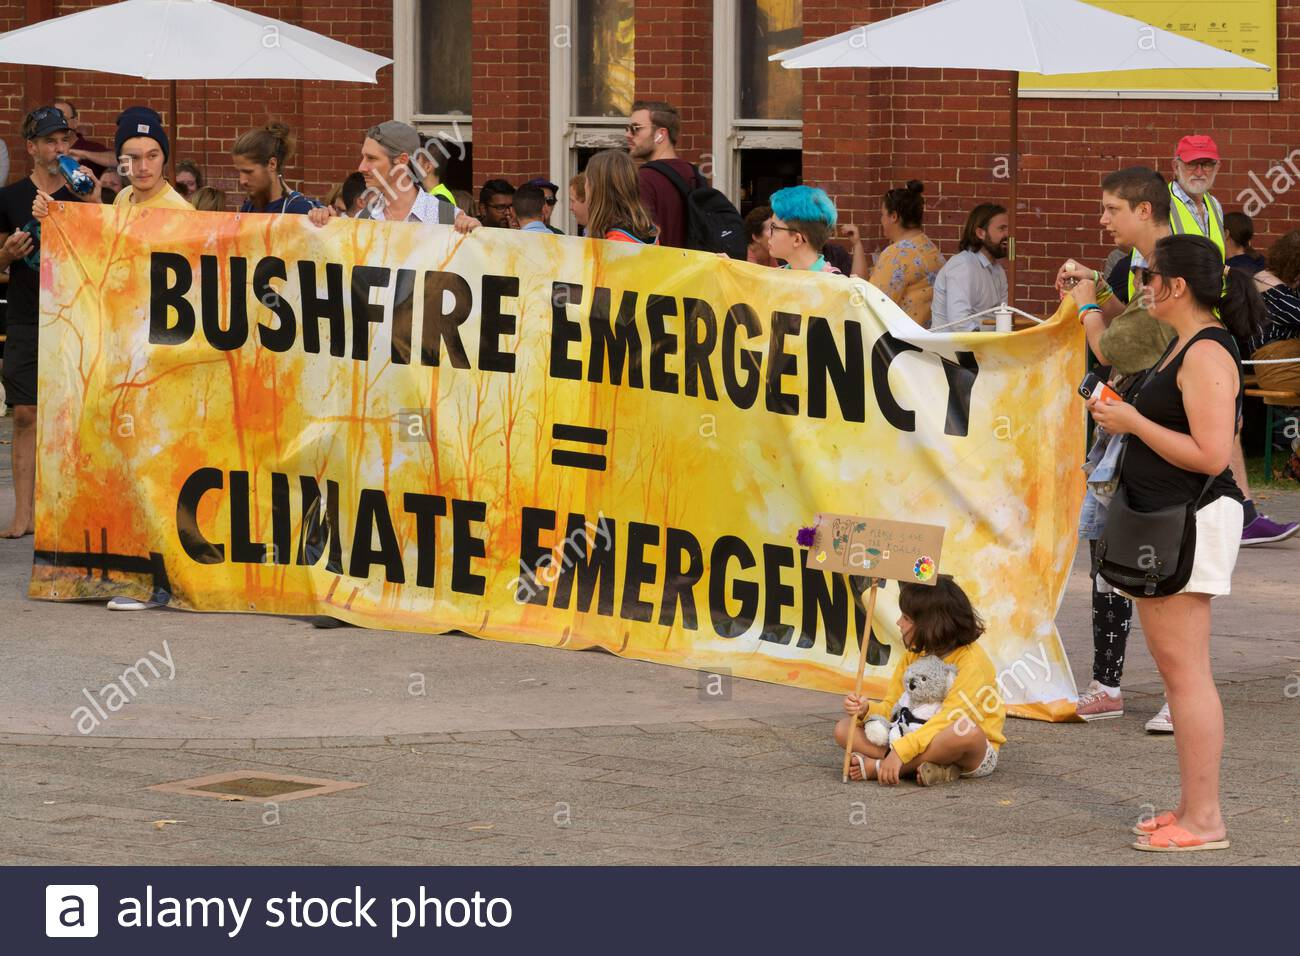 a-community-vigil-in-response-to-the-bushfire-crisis-organised-by-school-strike-4-climate-extinction-rebellion-at-perth-cultural-centre-wa-2ANJMKD.jpg